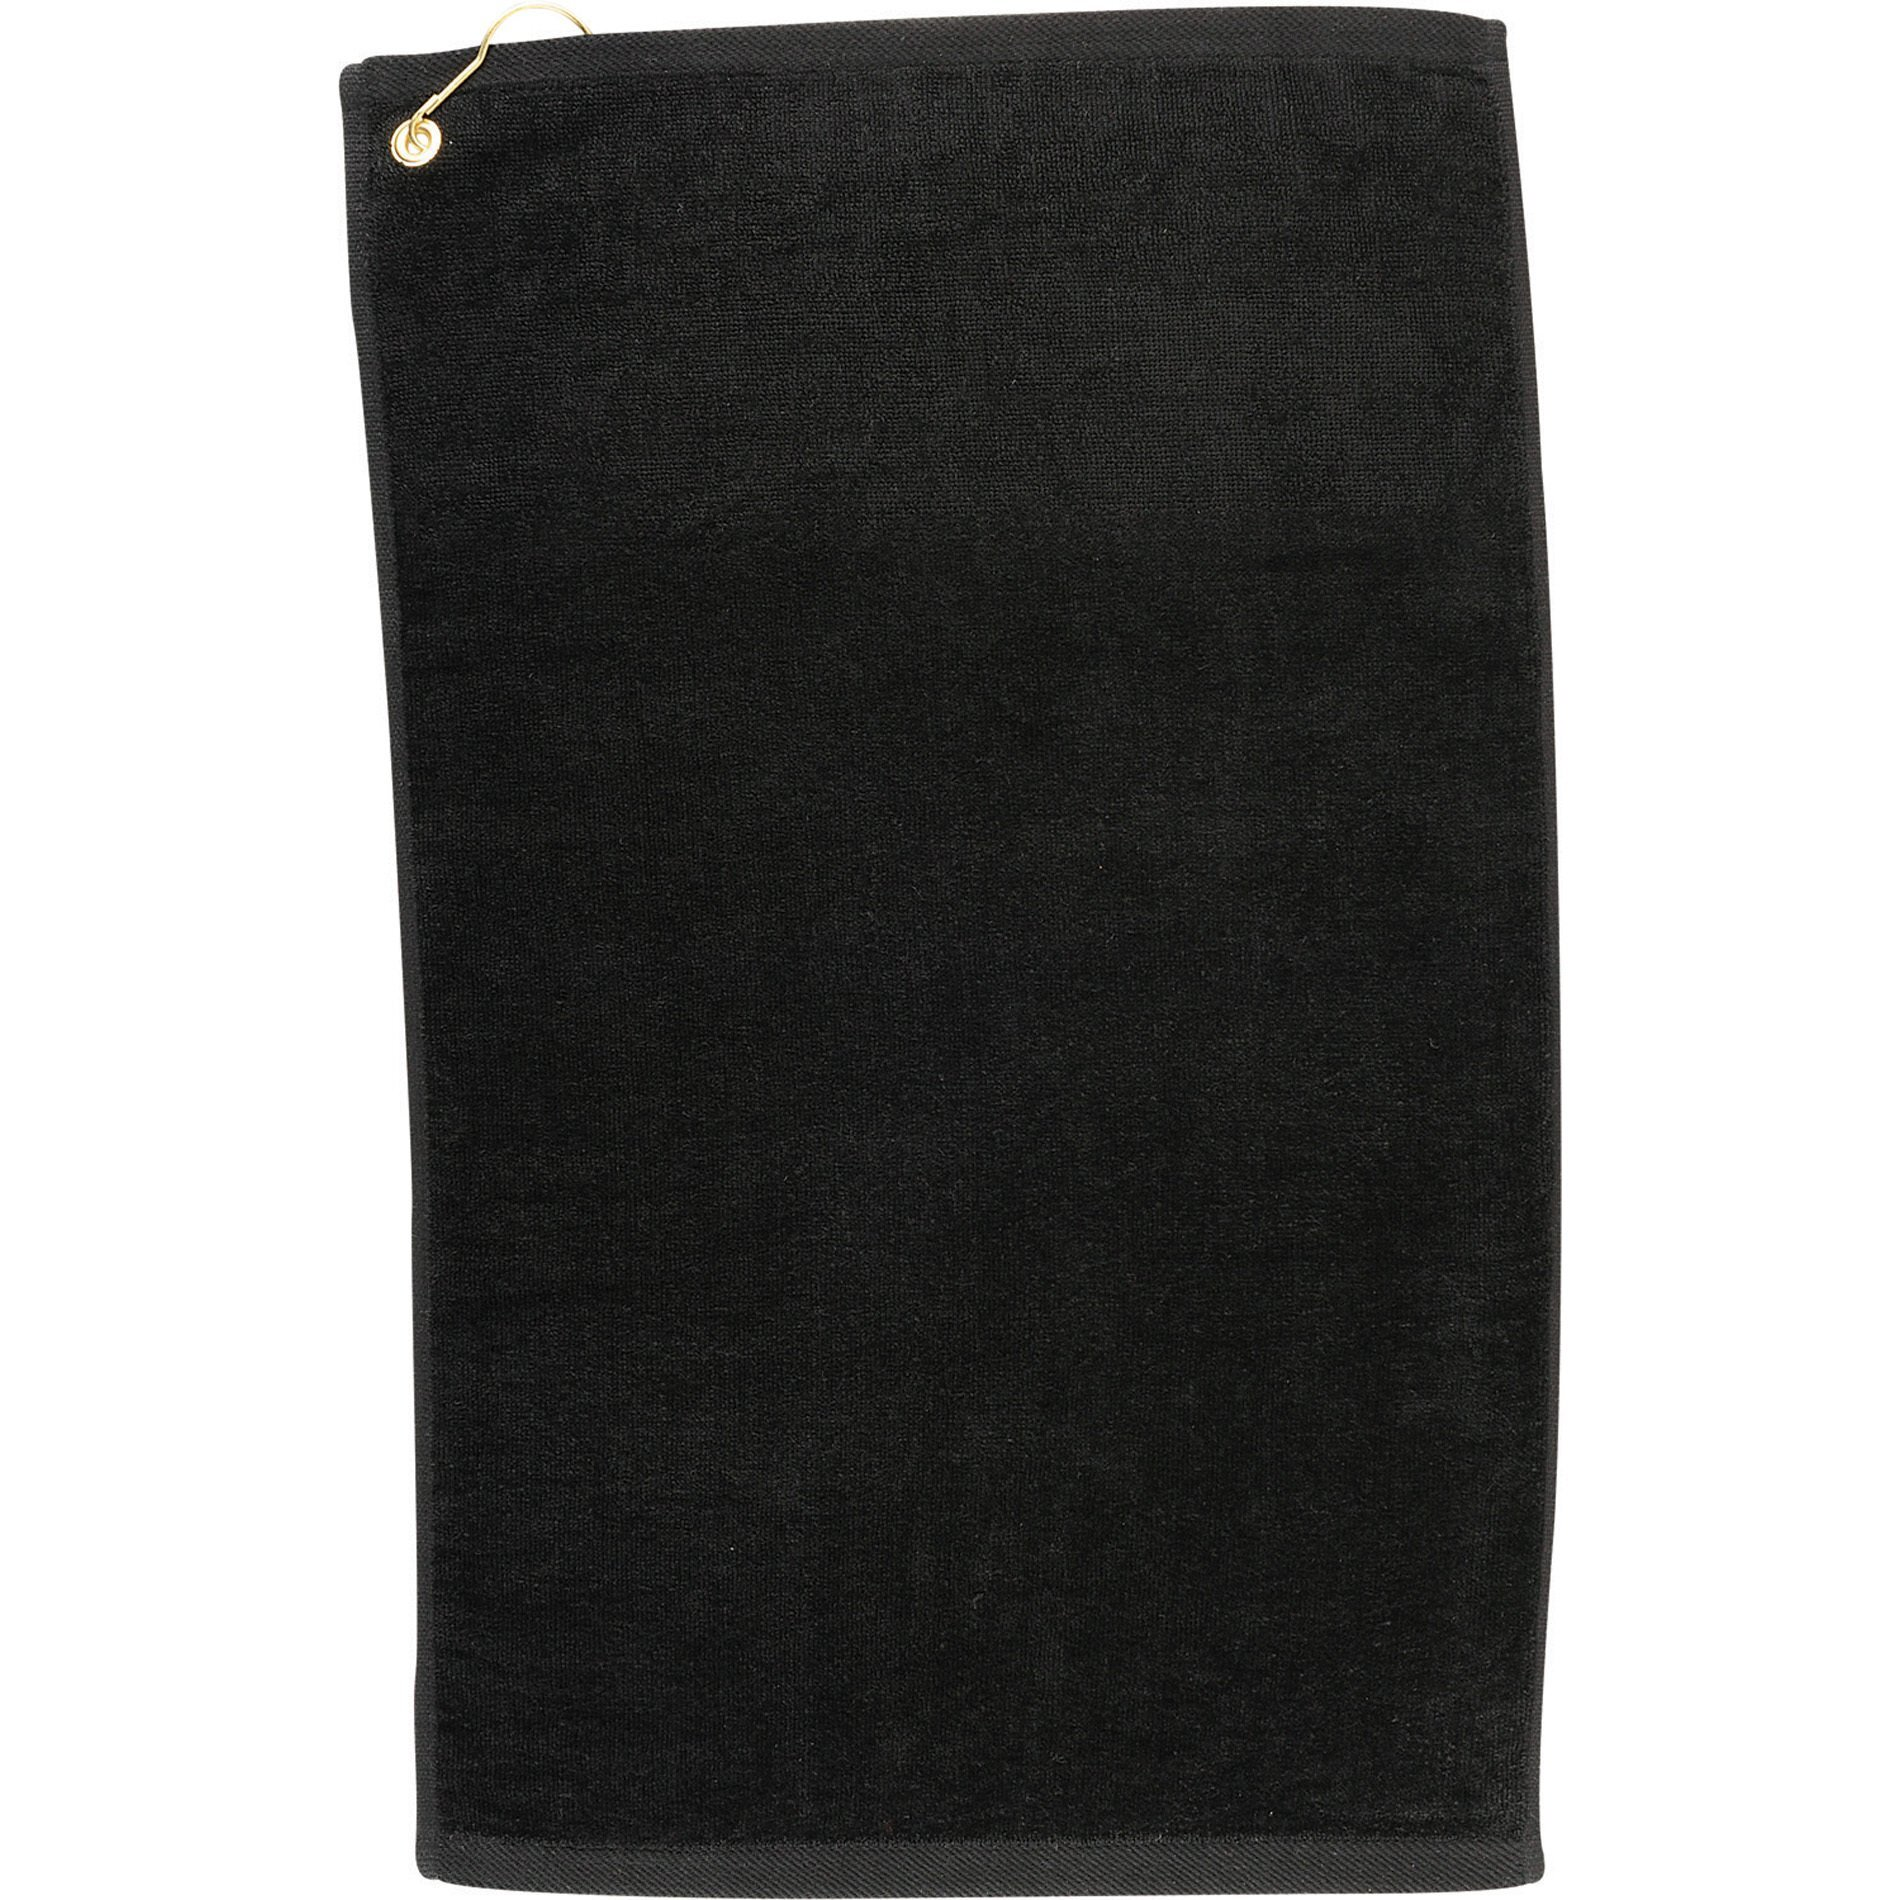 Midweight Terry Velour Golf Towel, 2.5 lb